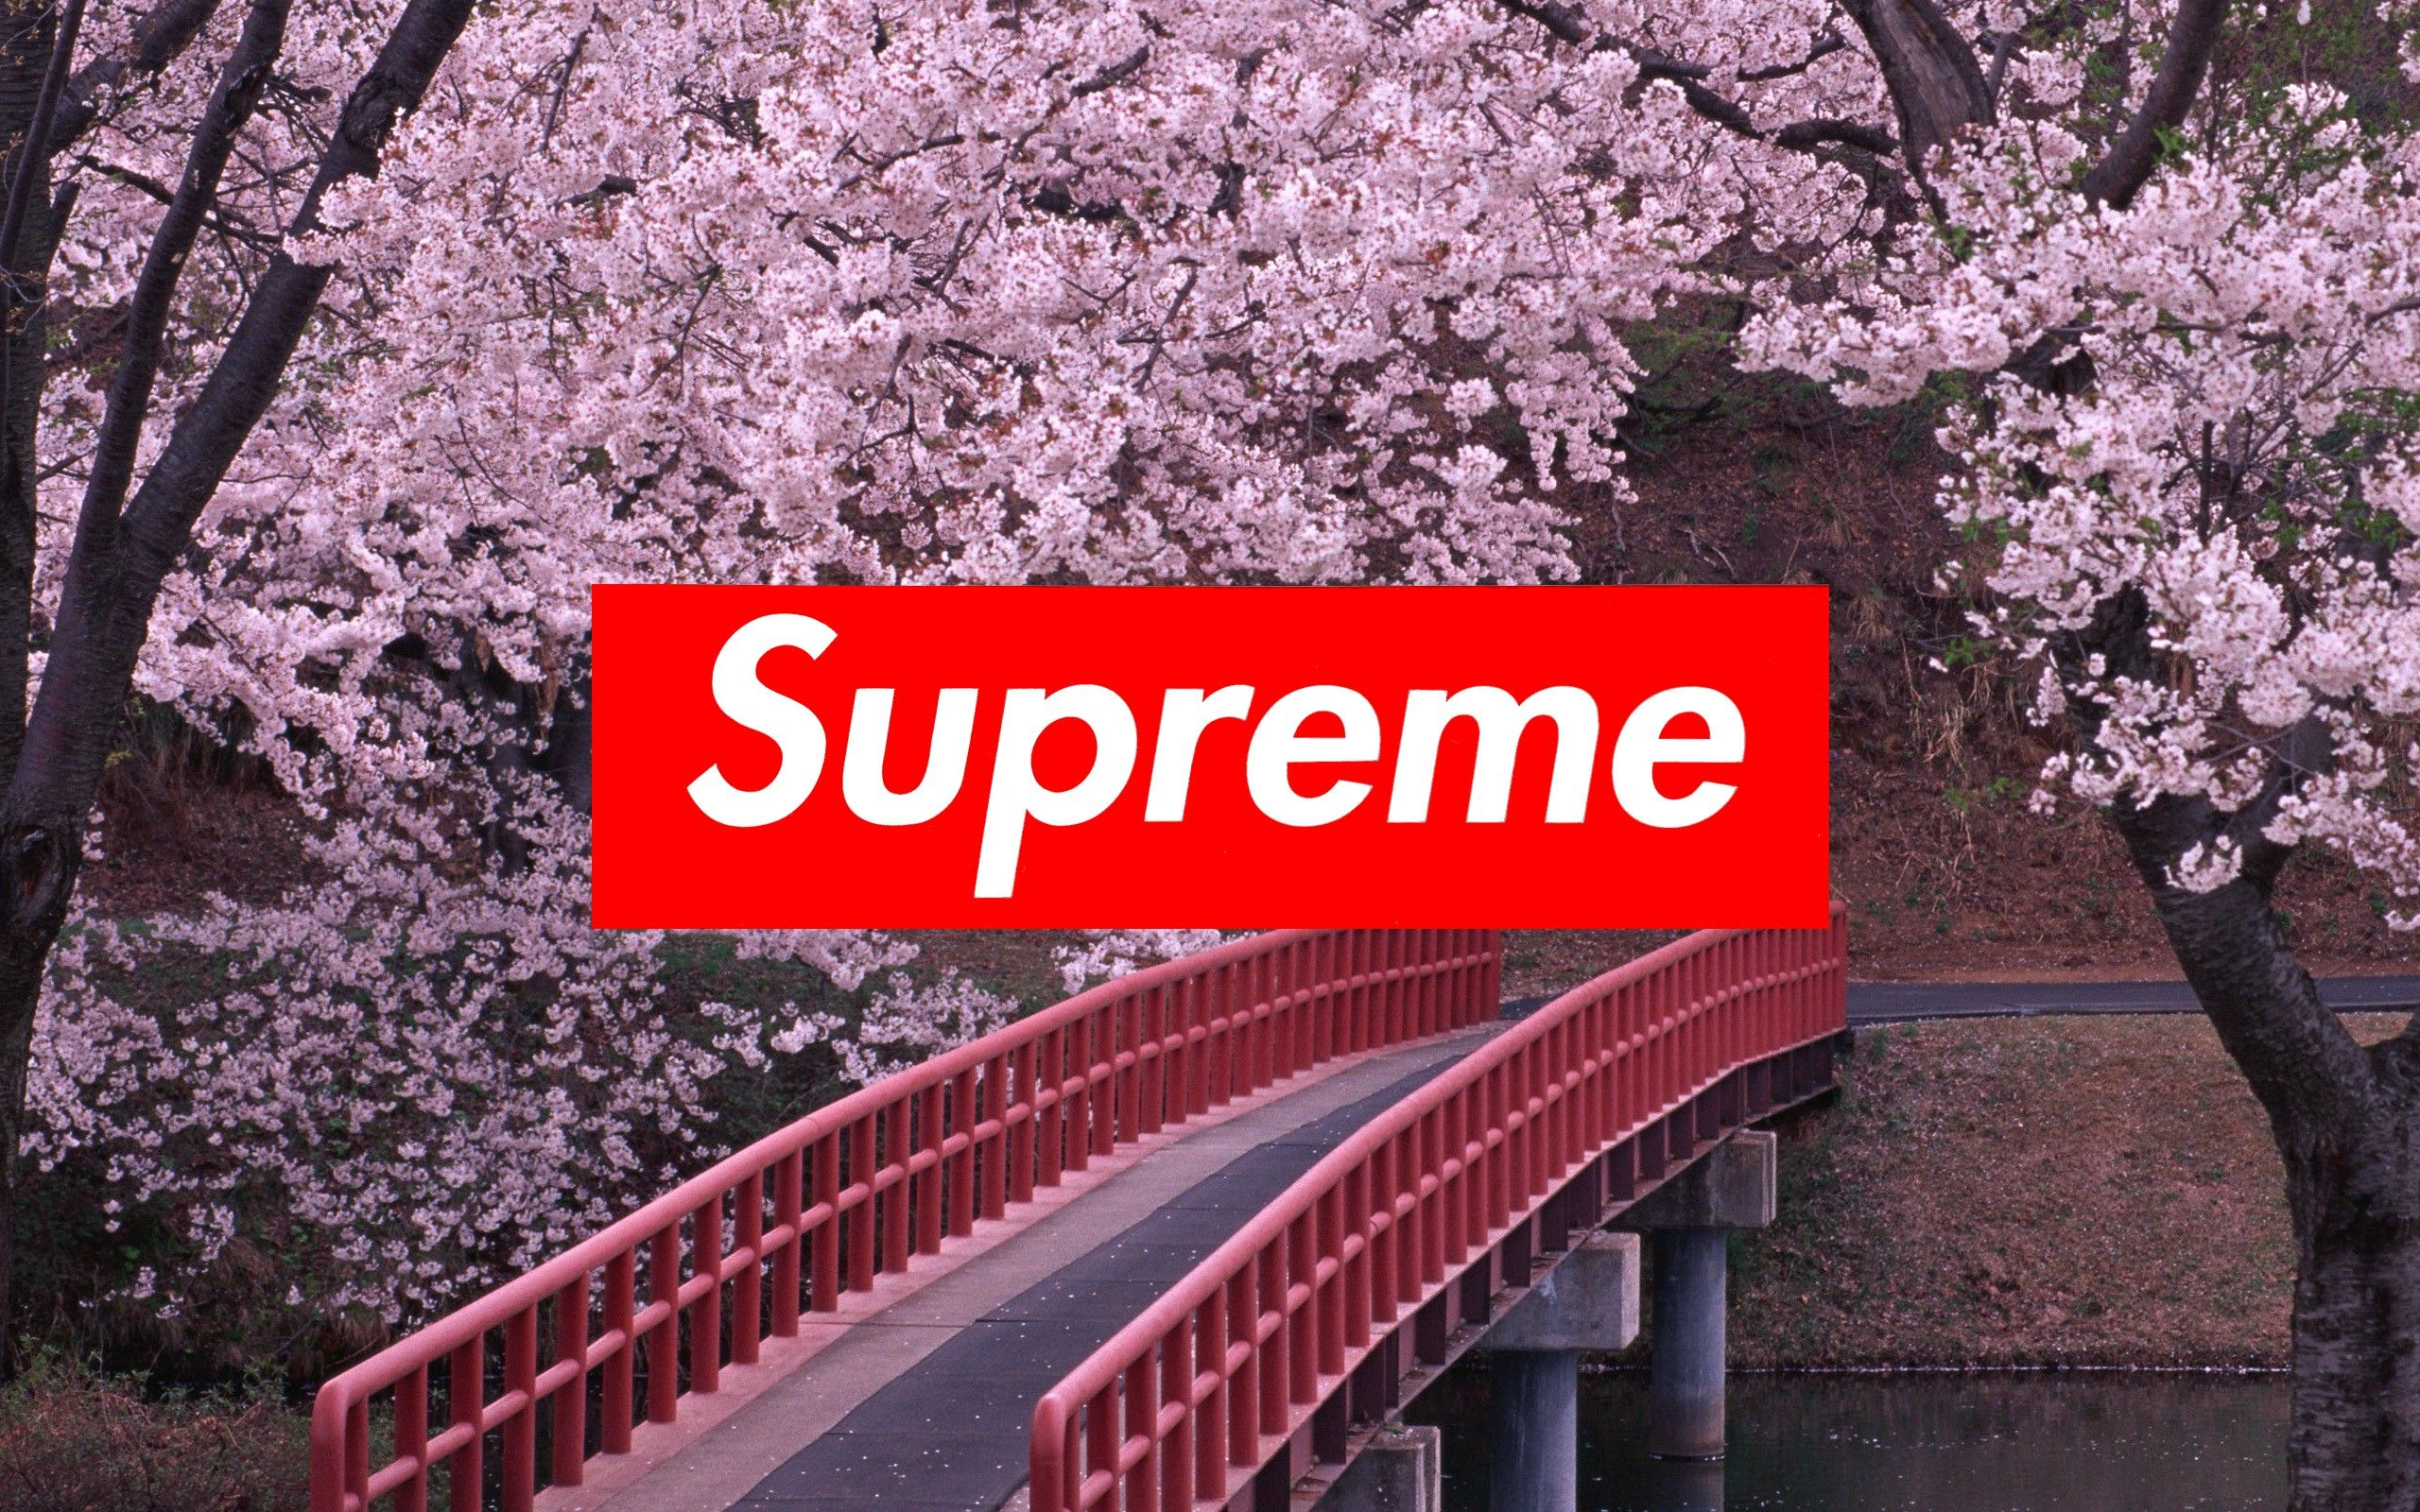 2560x1600 Supreme background ·① Download free backgrounds for desktop and ...